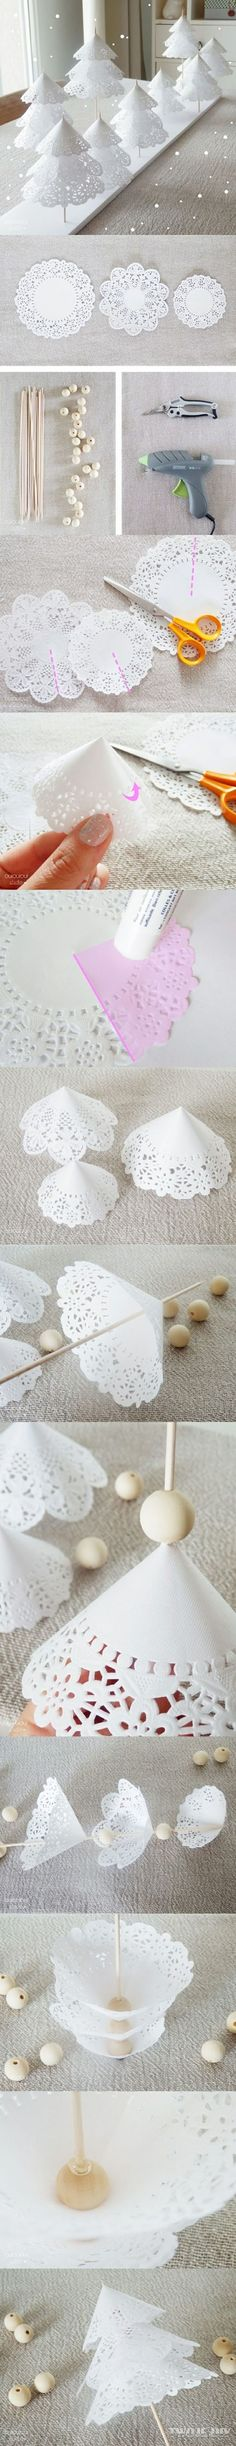 I would use bits of white styrofoam peanuts between doilies....cheaper and would not show!